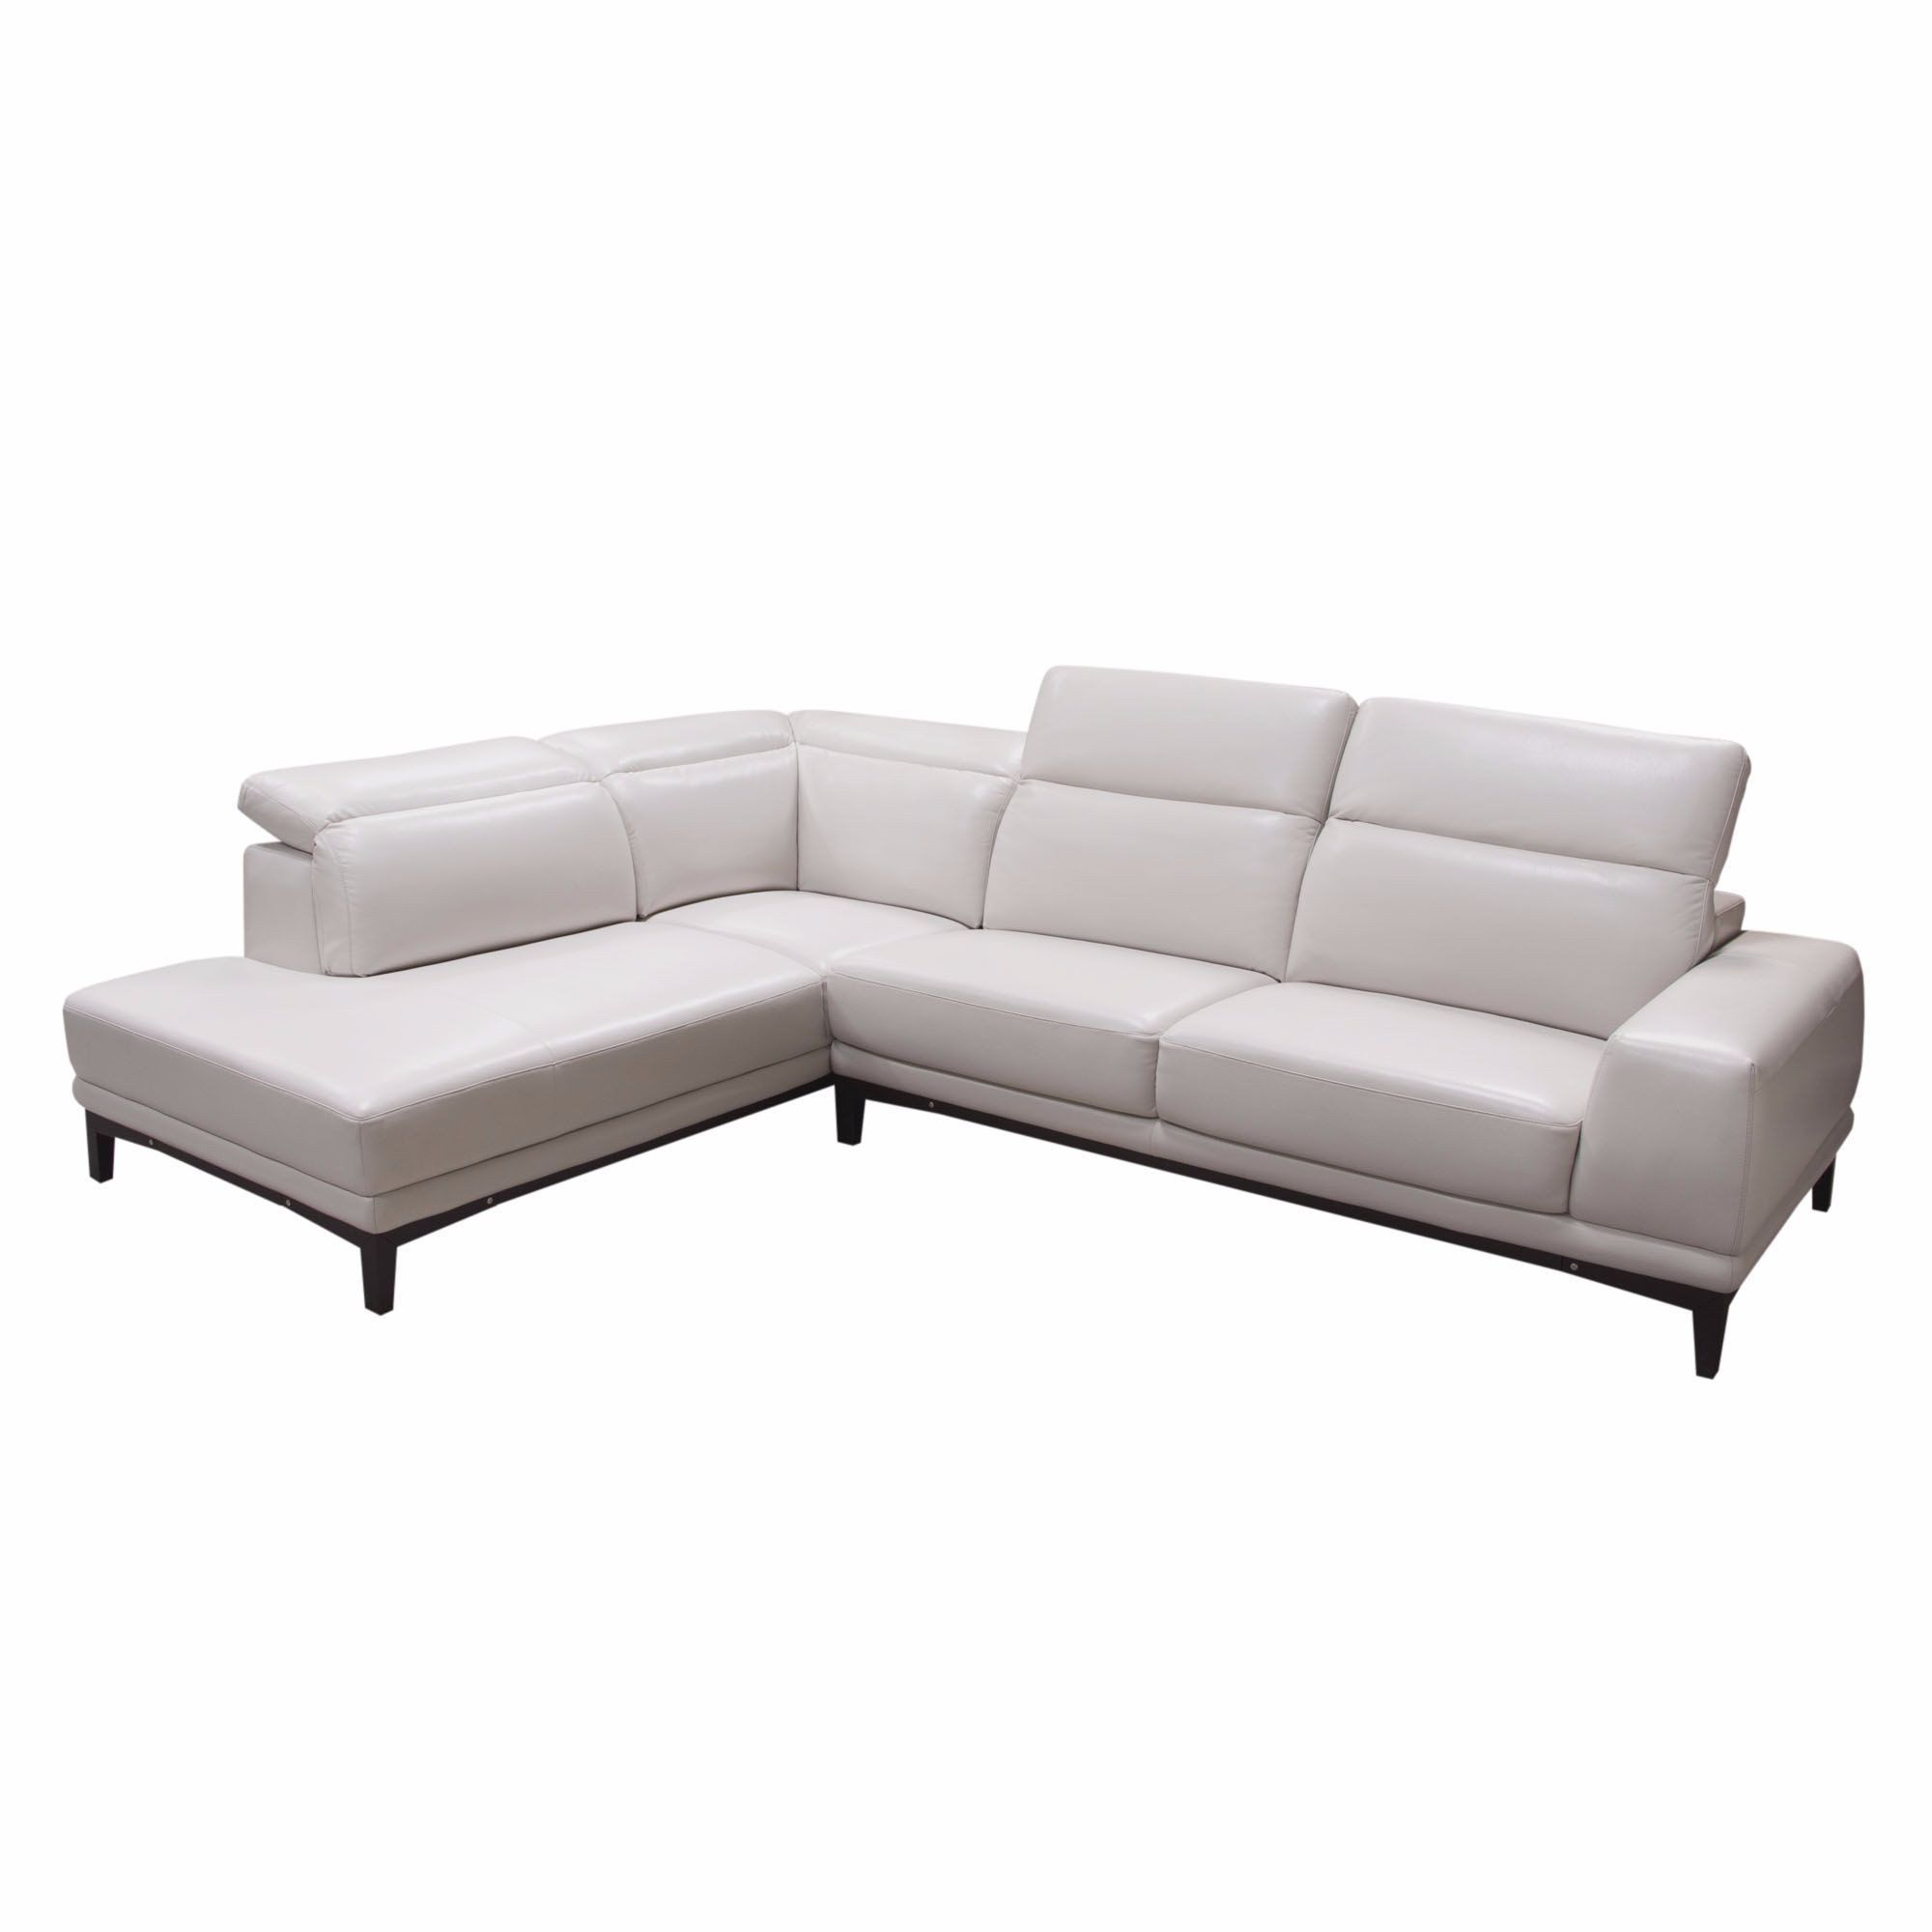 Pearl LF Chaise 2PC Sectional in Bone Air Leather with Adjustable Headrests and Wood Trim by Diamond Sofa